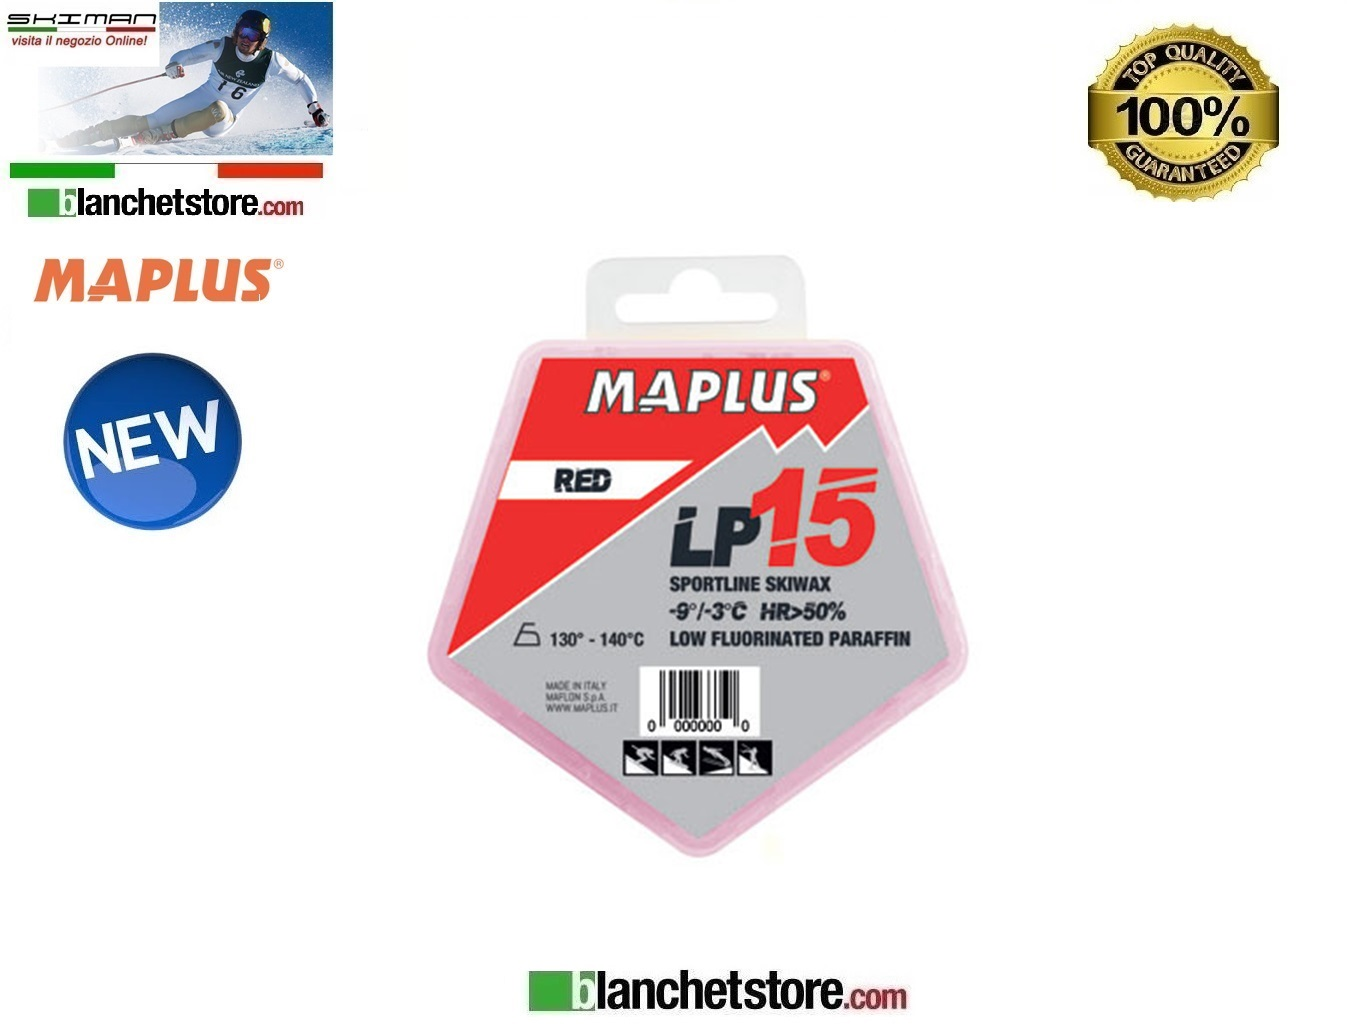 SCIOLINA MAPLUS LOW FLUO LP 15 RED Conf 100 gr